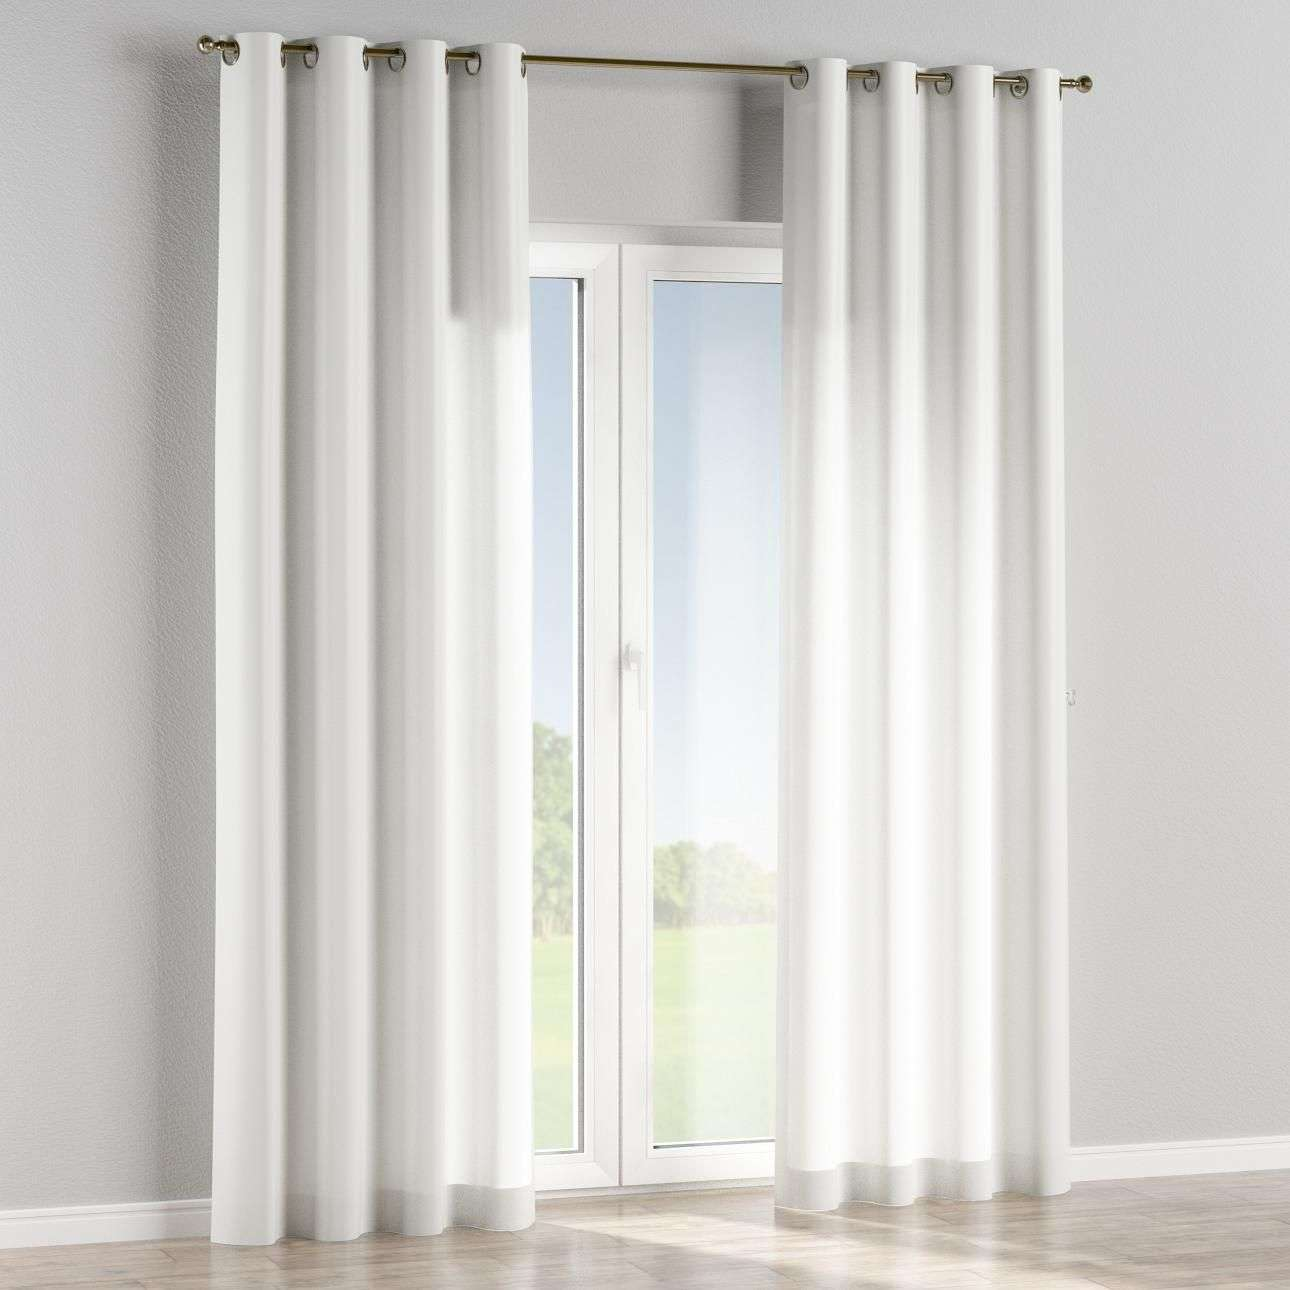 Eyelet curtains in collection Nordic, fabric: 630-21